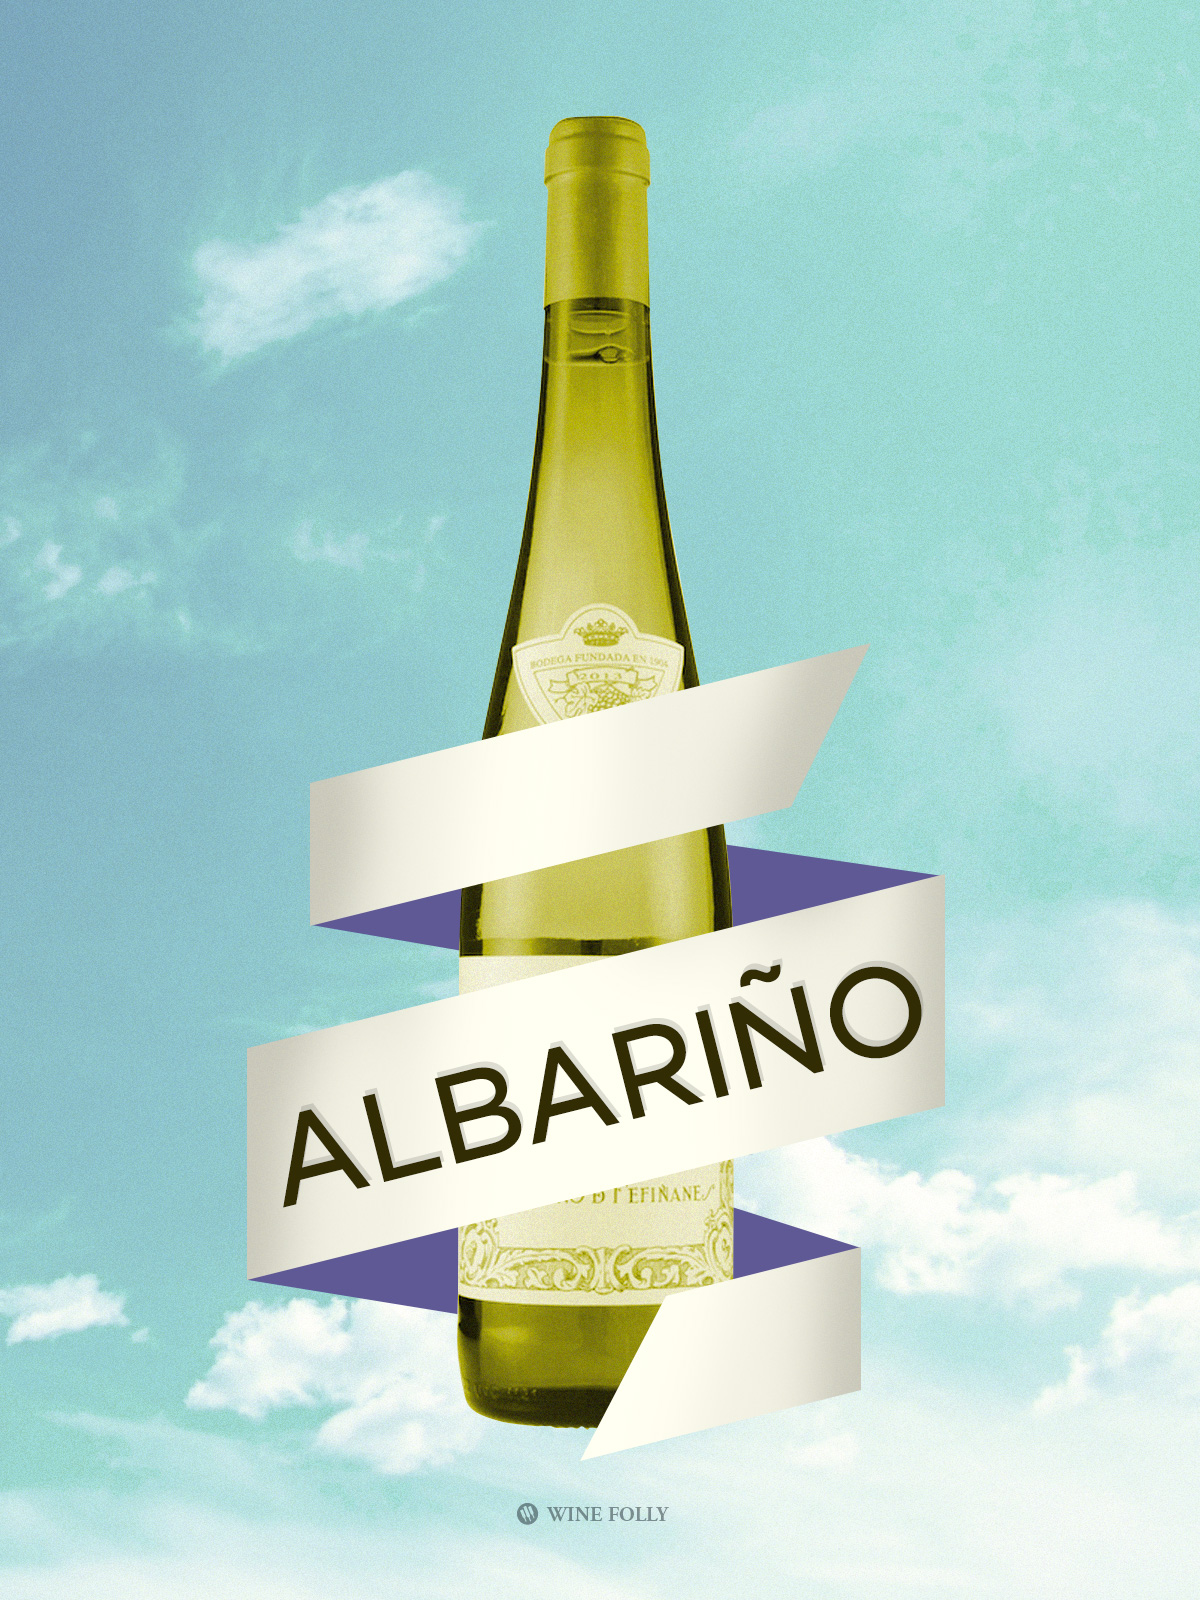 Albariño wine from Spain illustration by Wine Folly